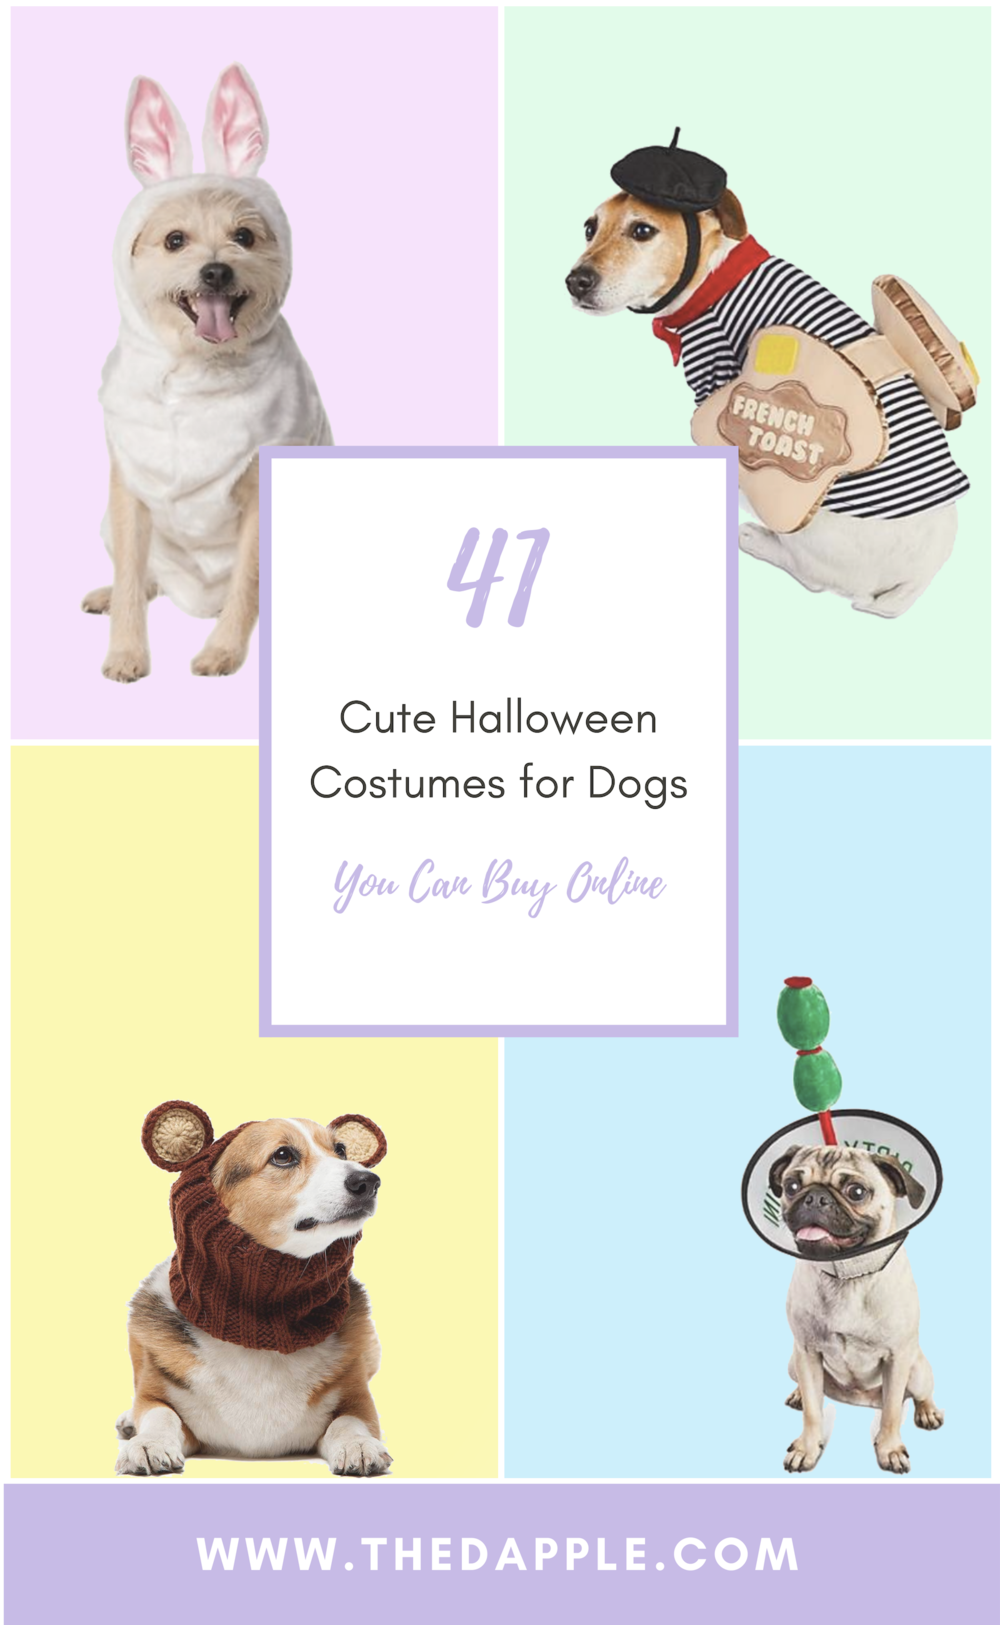 Best Cute and Funny Dog Halloween Costumes for Halloween 2018